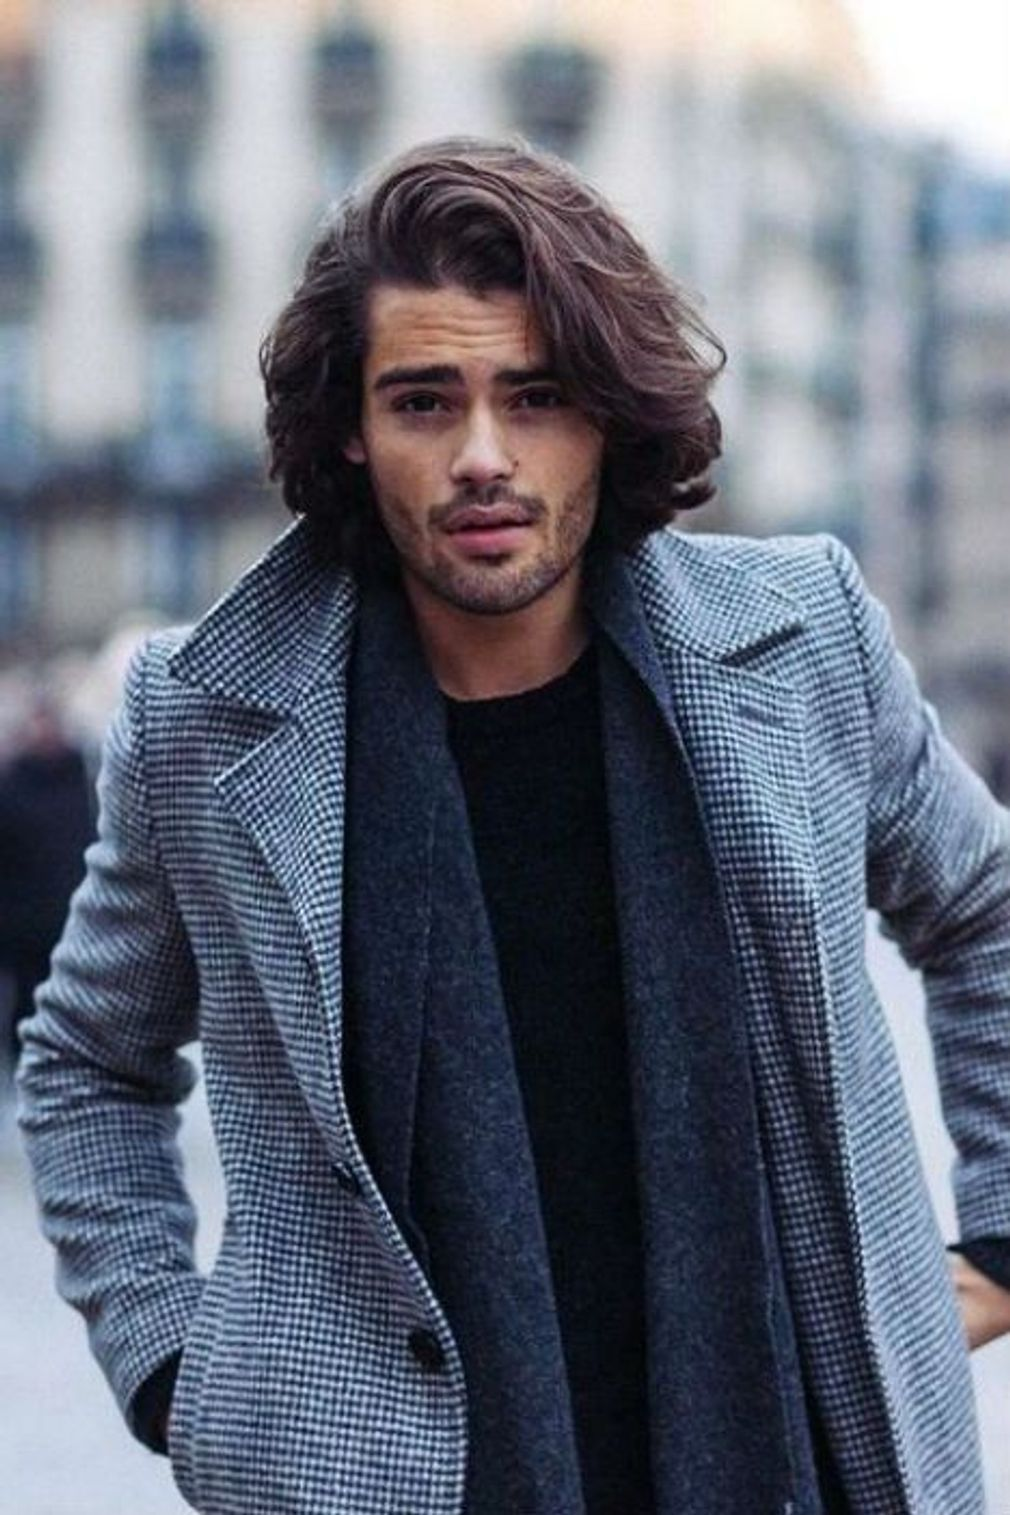 Coiffure homme 2019 | Coiffure homme long, Coupe homme cheveux long, Coiffure homme cheveux mi-longs